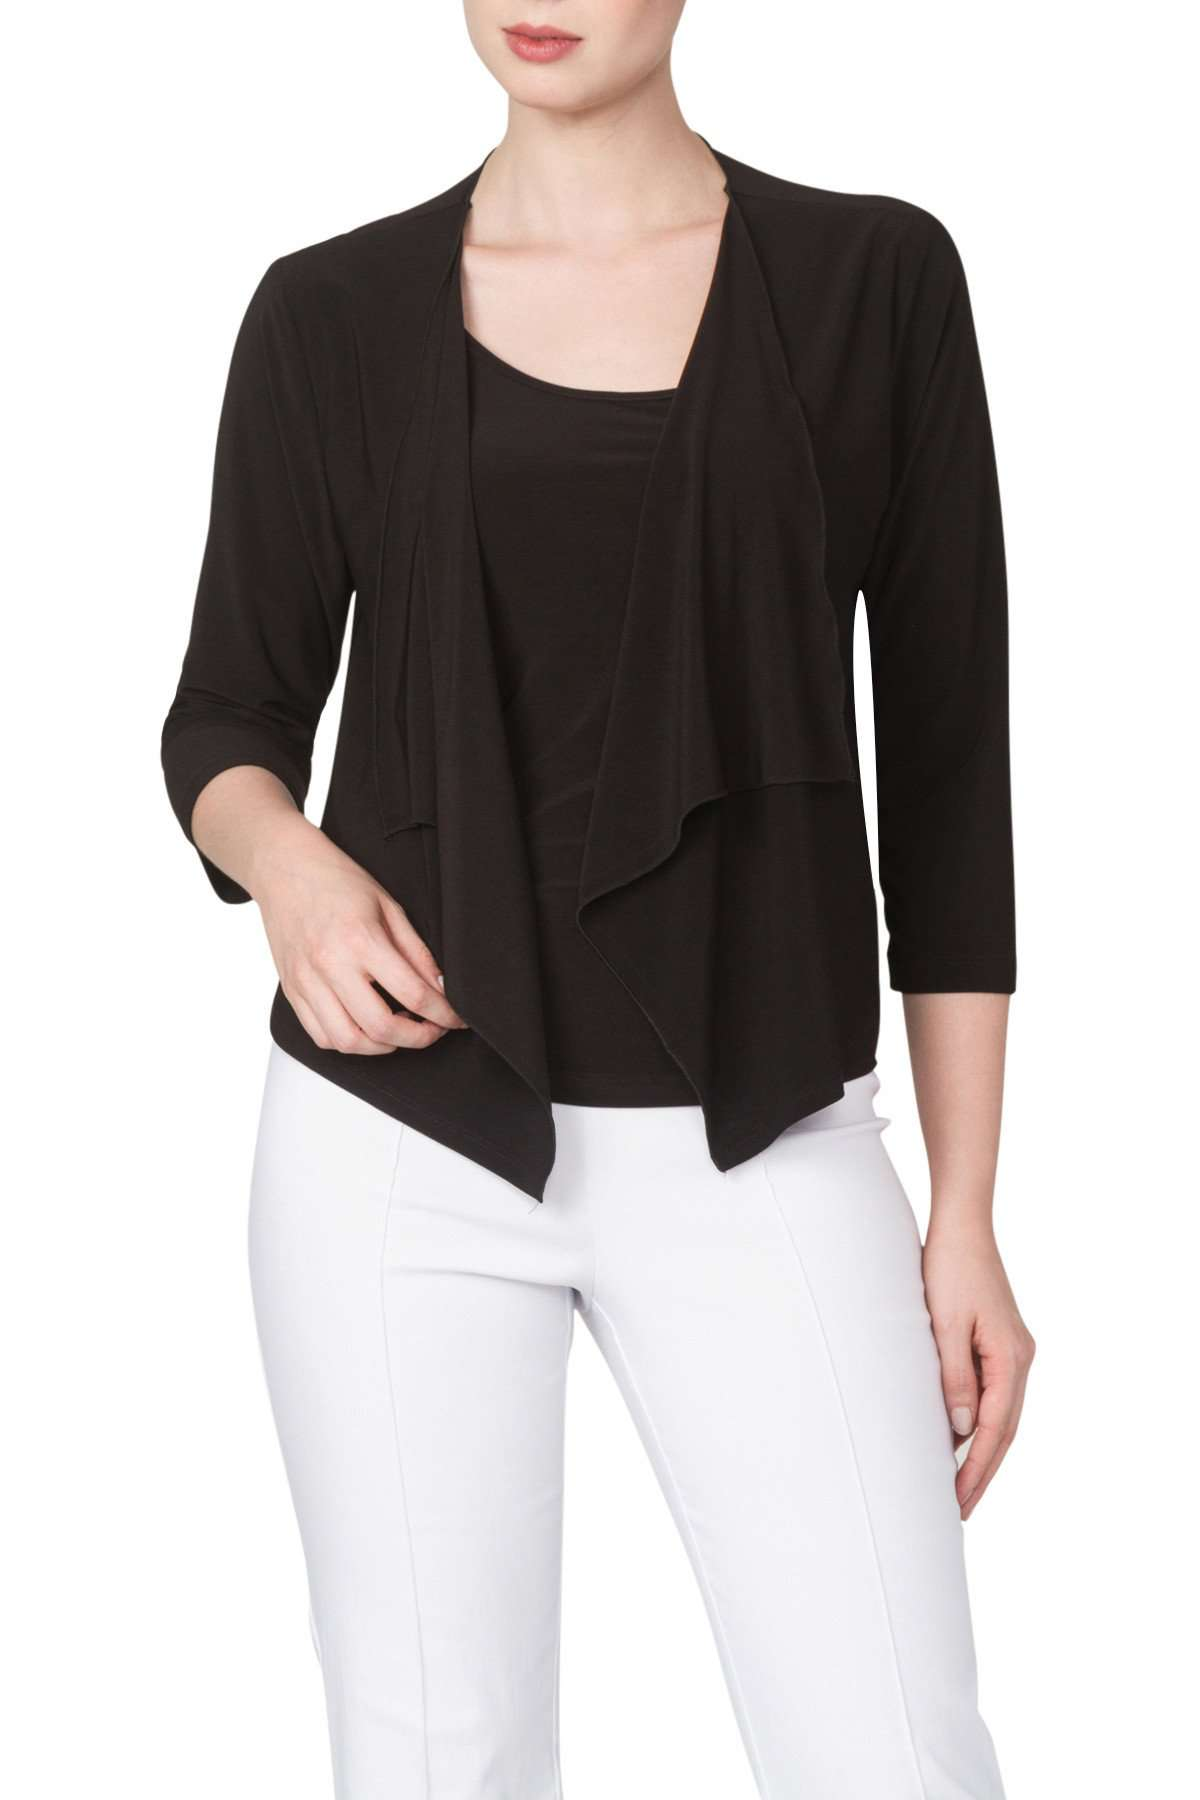 Women's Black Bolero Now 50 Off-Made In Canada-Shop Local - Yvonne Marie